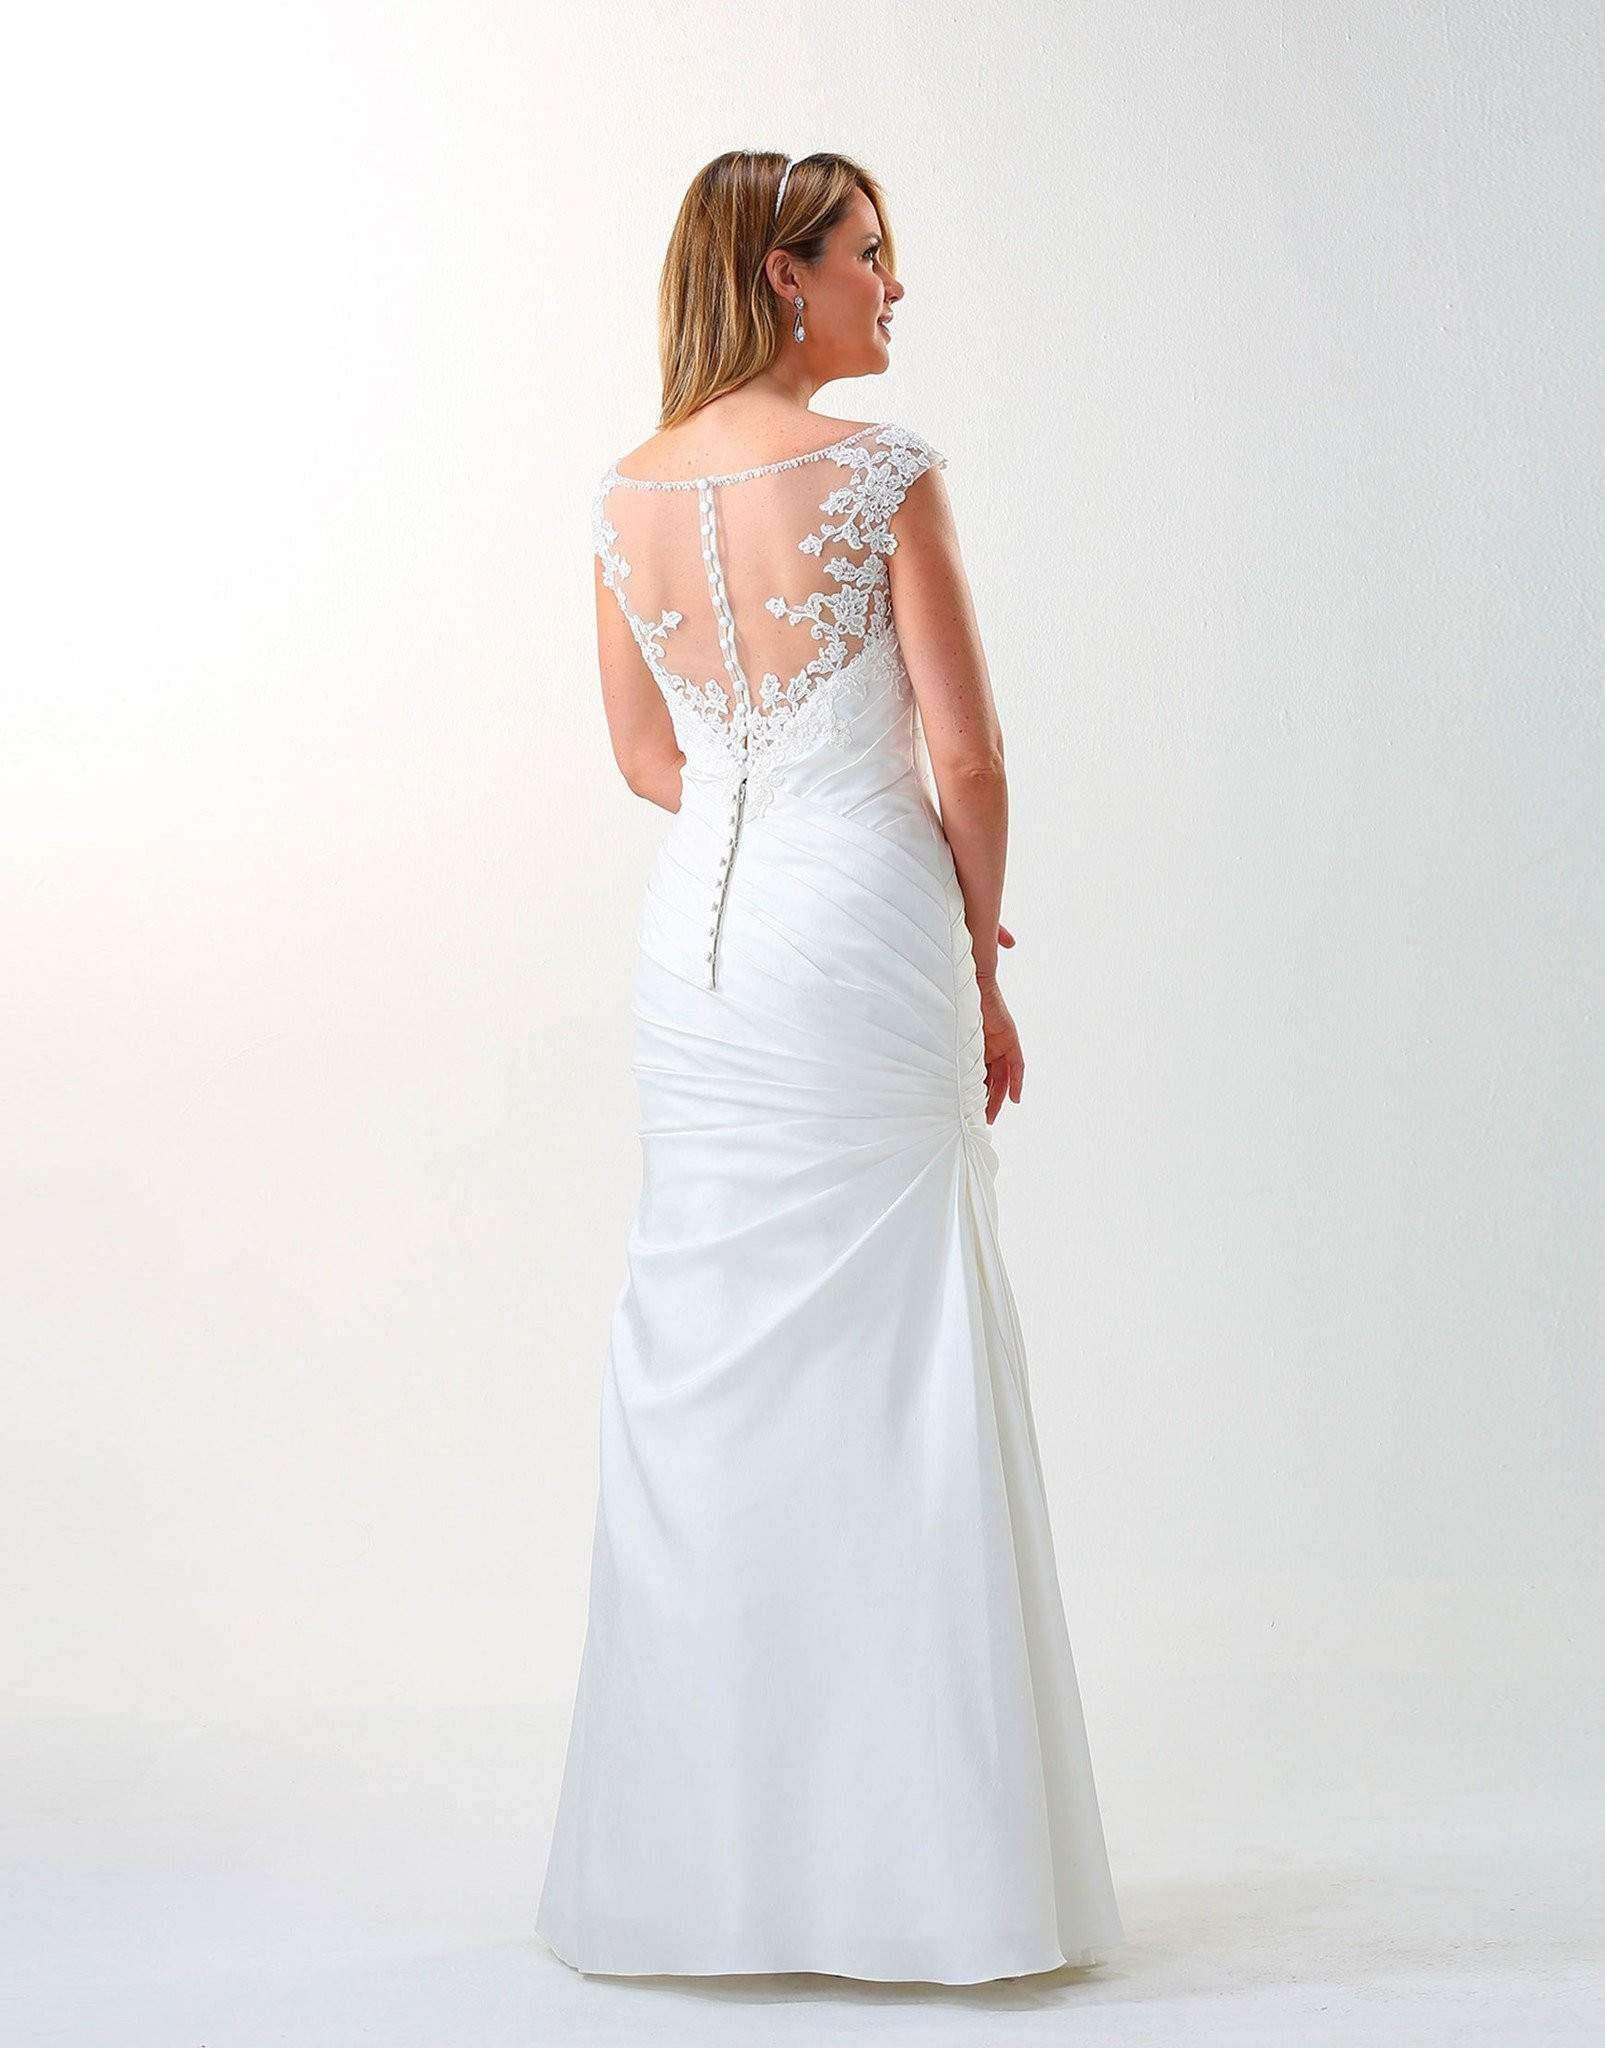 UK30 - Jilly with train - SALE - Adore Bridal and Occasion Wear